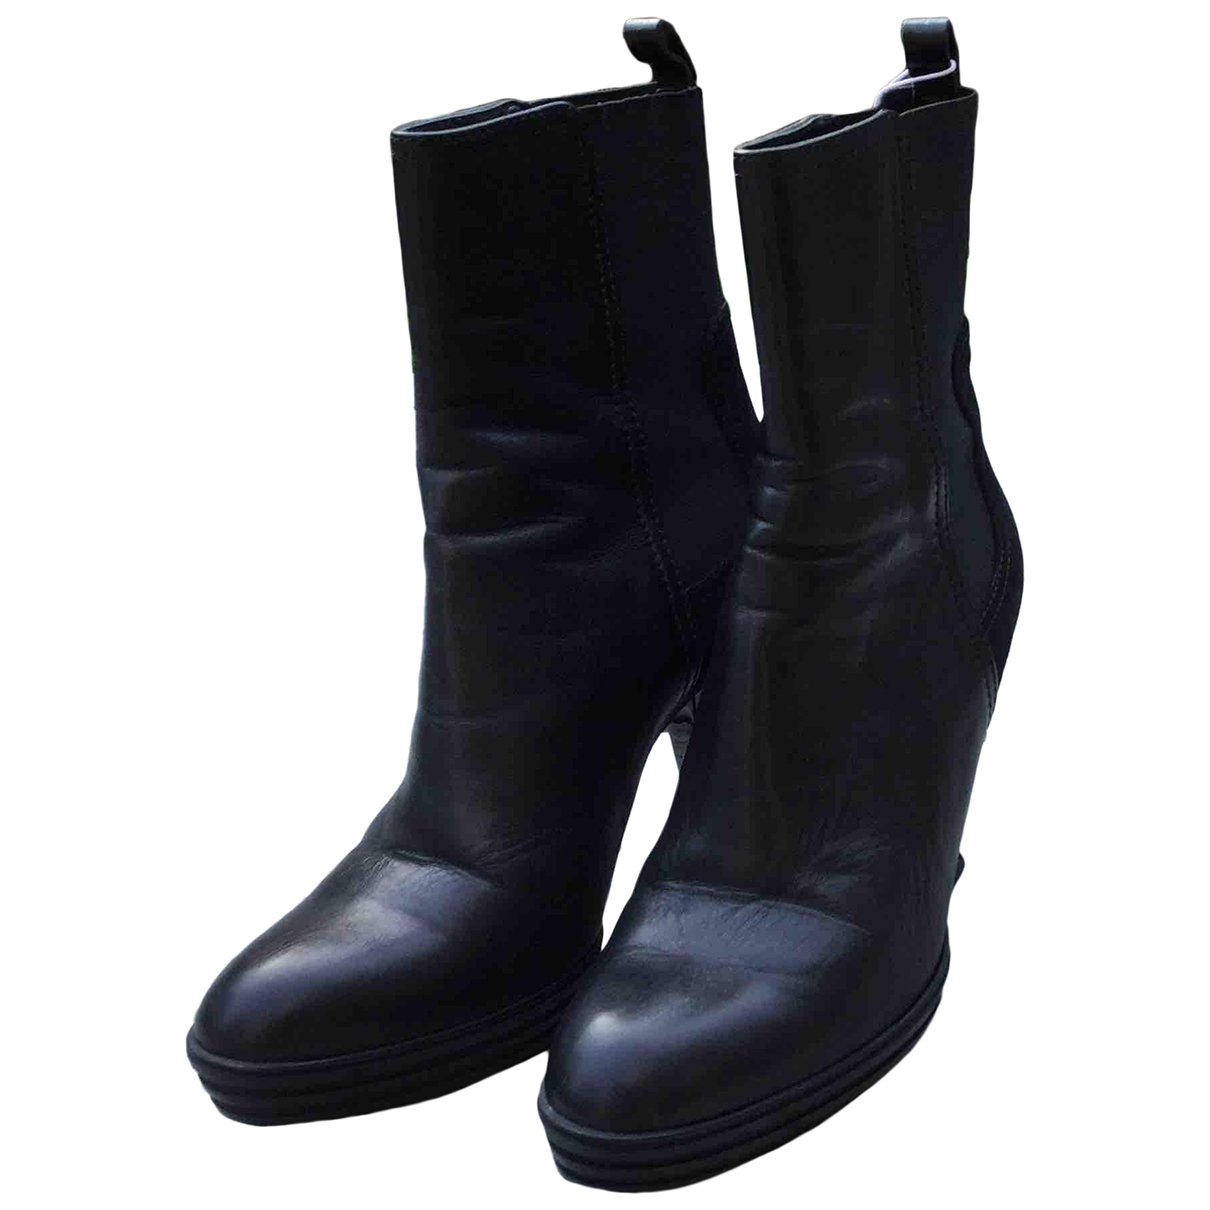 Hogan \N Black Leather Ankle boots for Women 38.5 EU